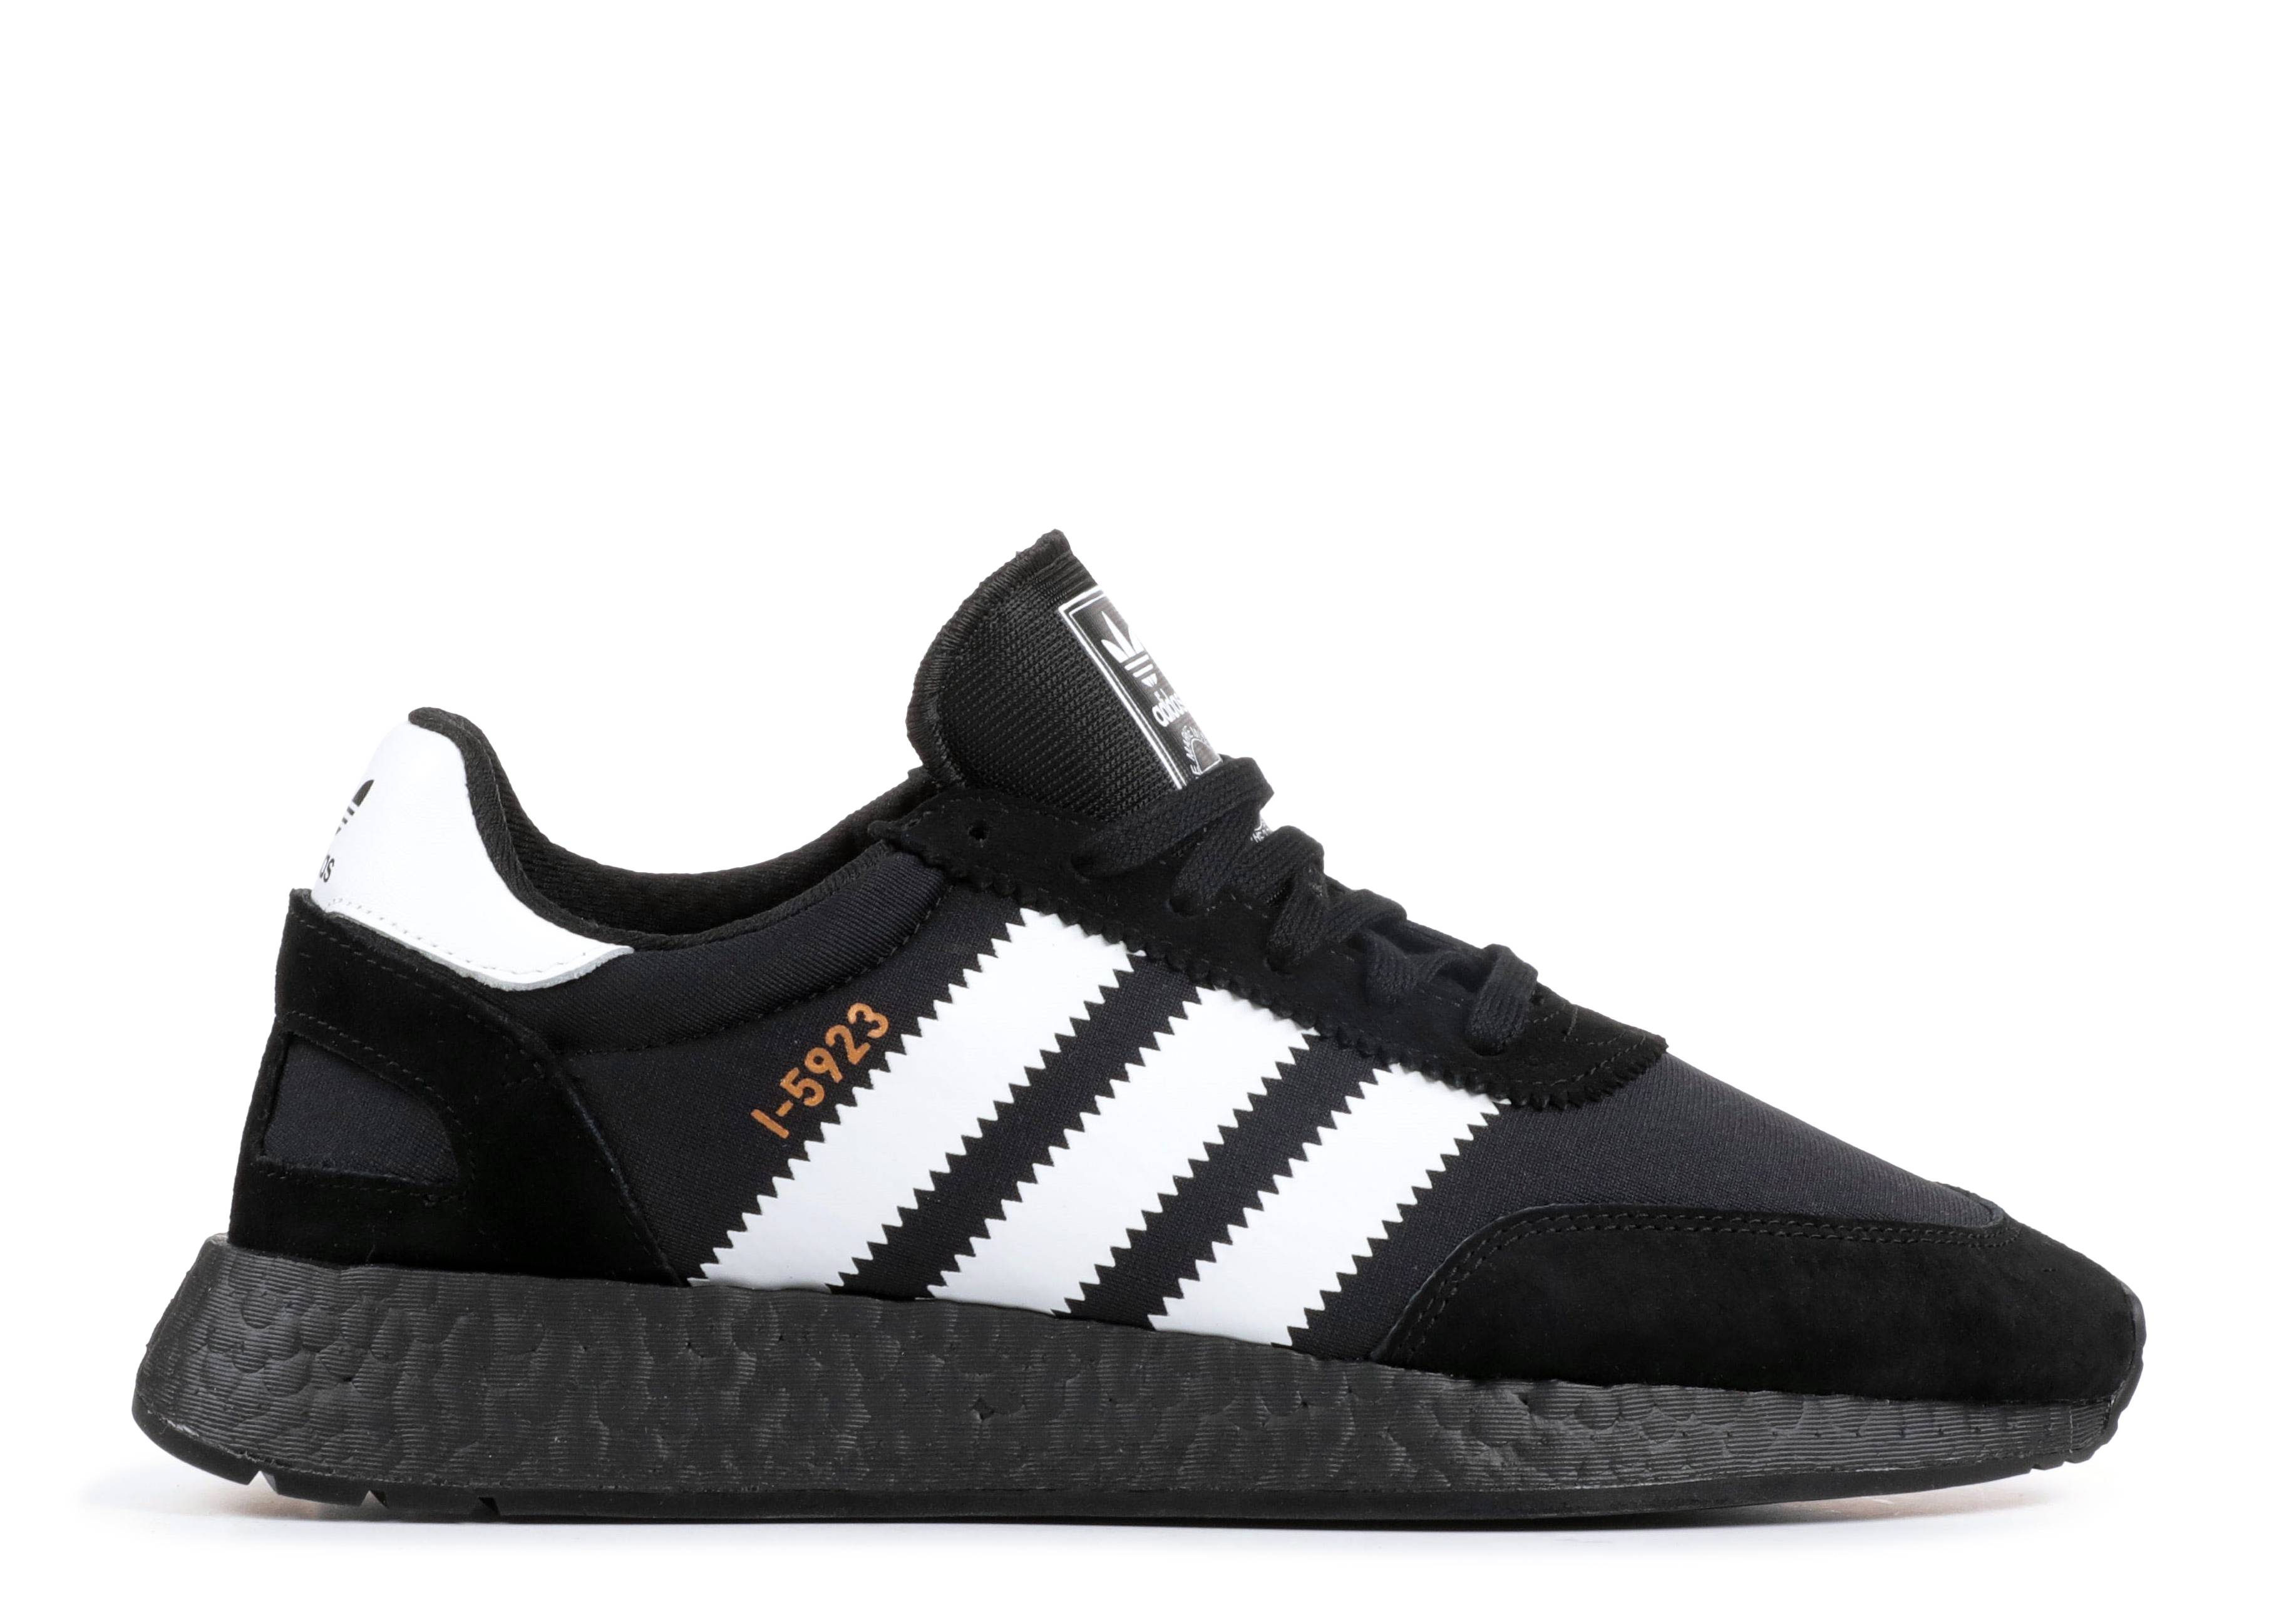 Literatura Gimnasta binario  I 5923 'Black Boost' - Adidas - CQ2490 - black/black/white | Flight Club